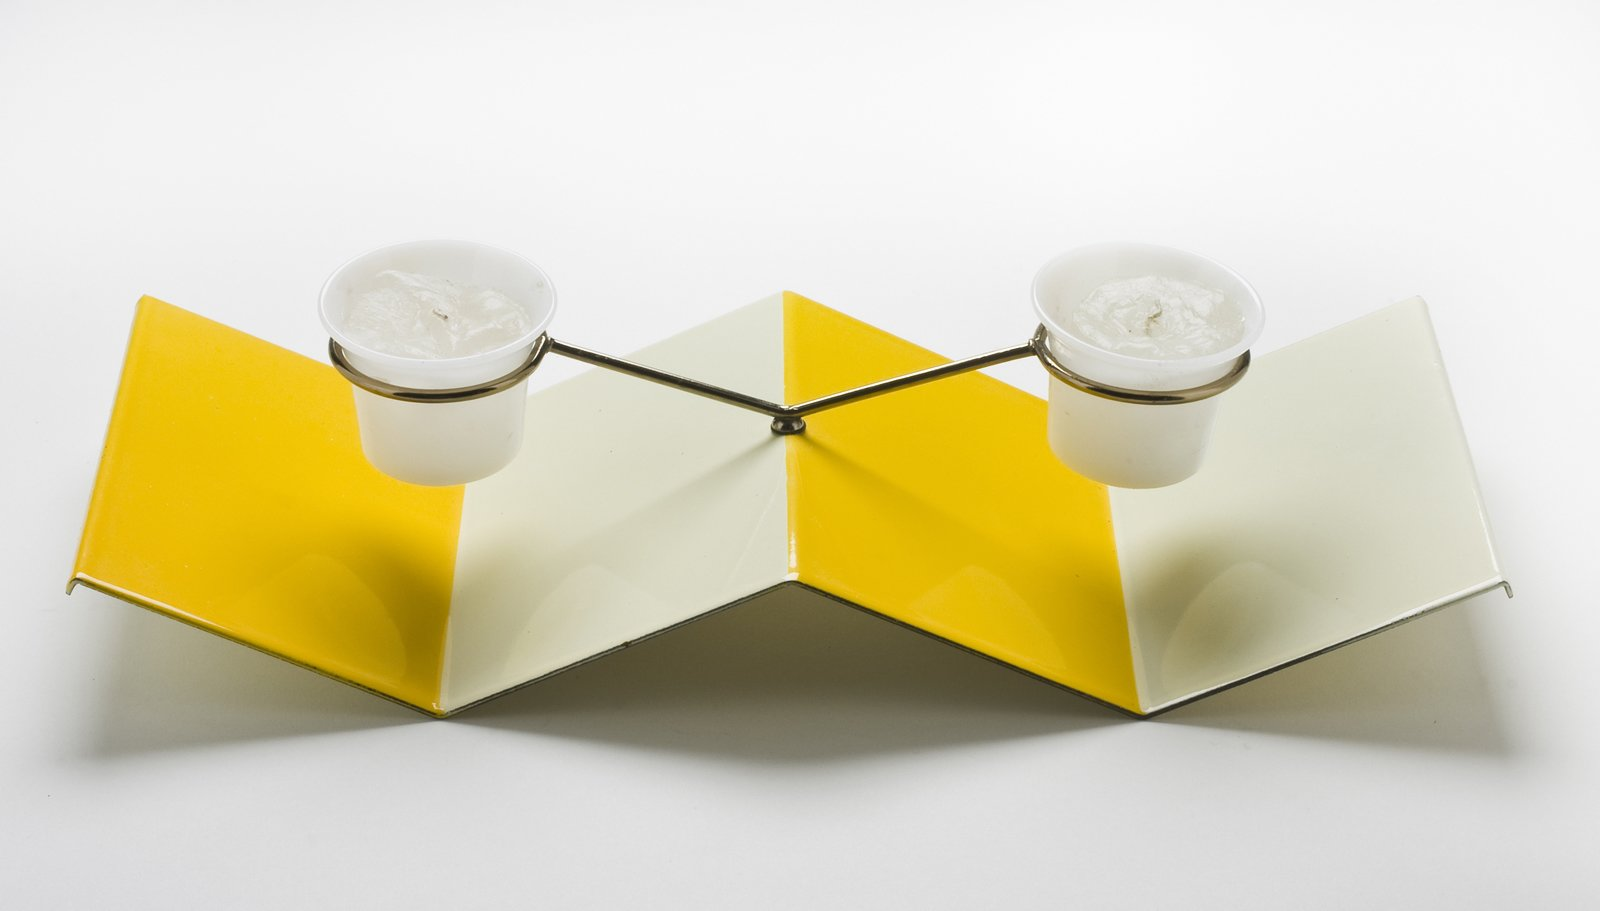 Table Top Candle Holder, porcelain enamel on steel, Jerome Ackerman, 1958.  A Marriage of Craft and Design by Miyoko Ohtake